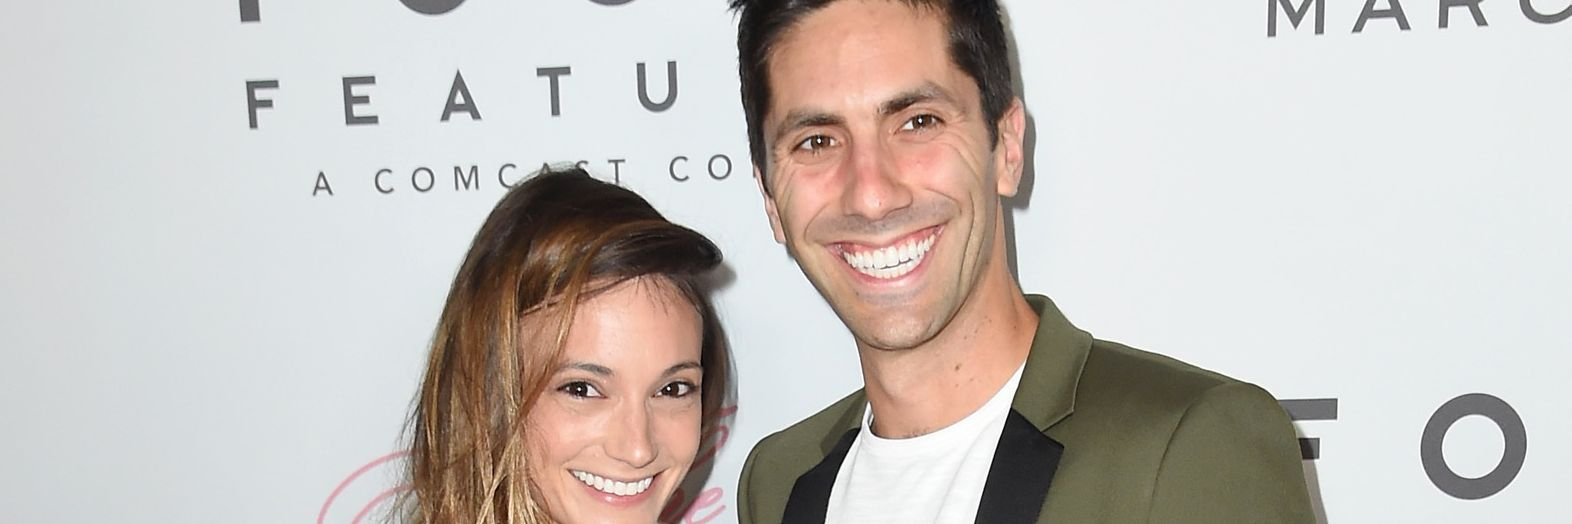 Nev and max relationships dating